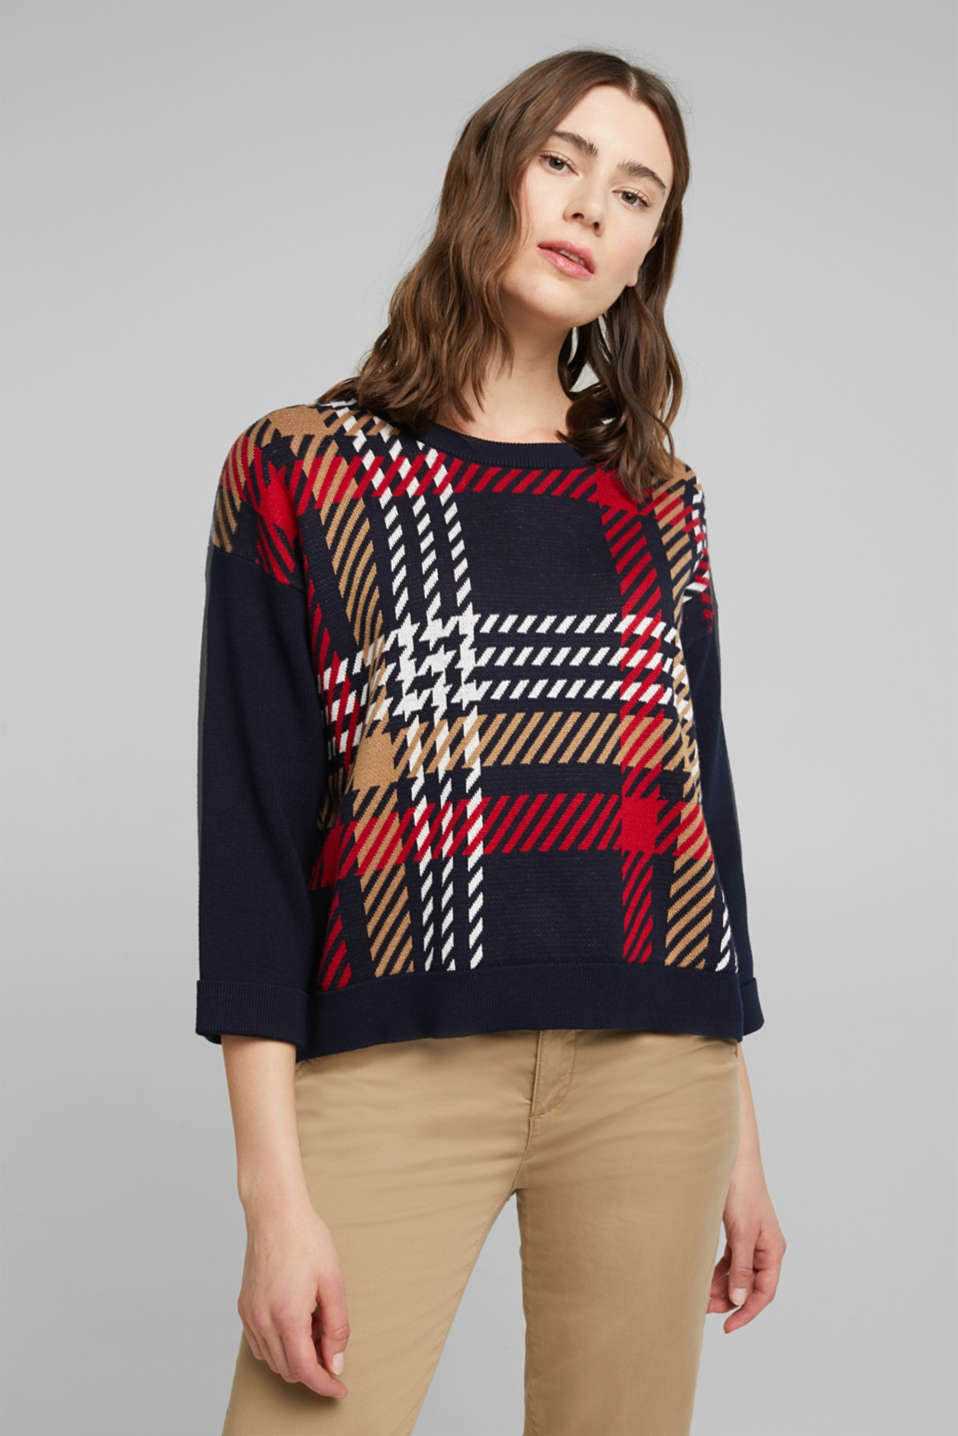 Esprit - Jacquard jumper with cashmere